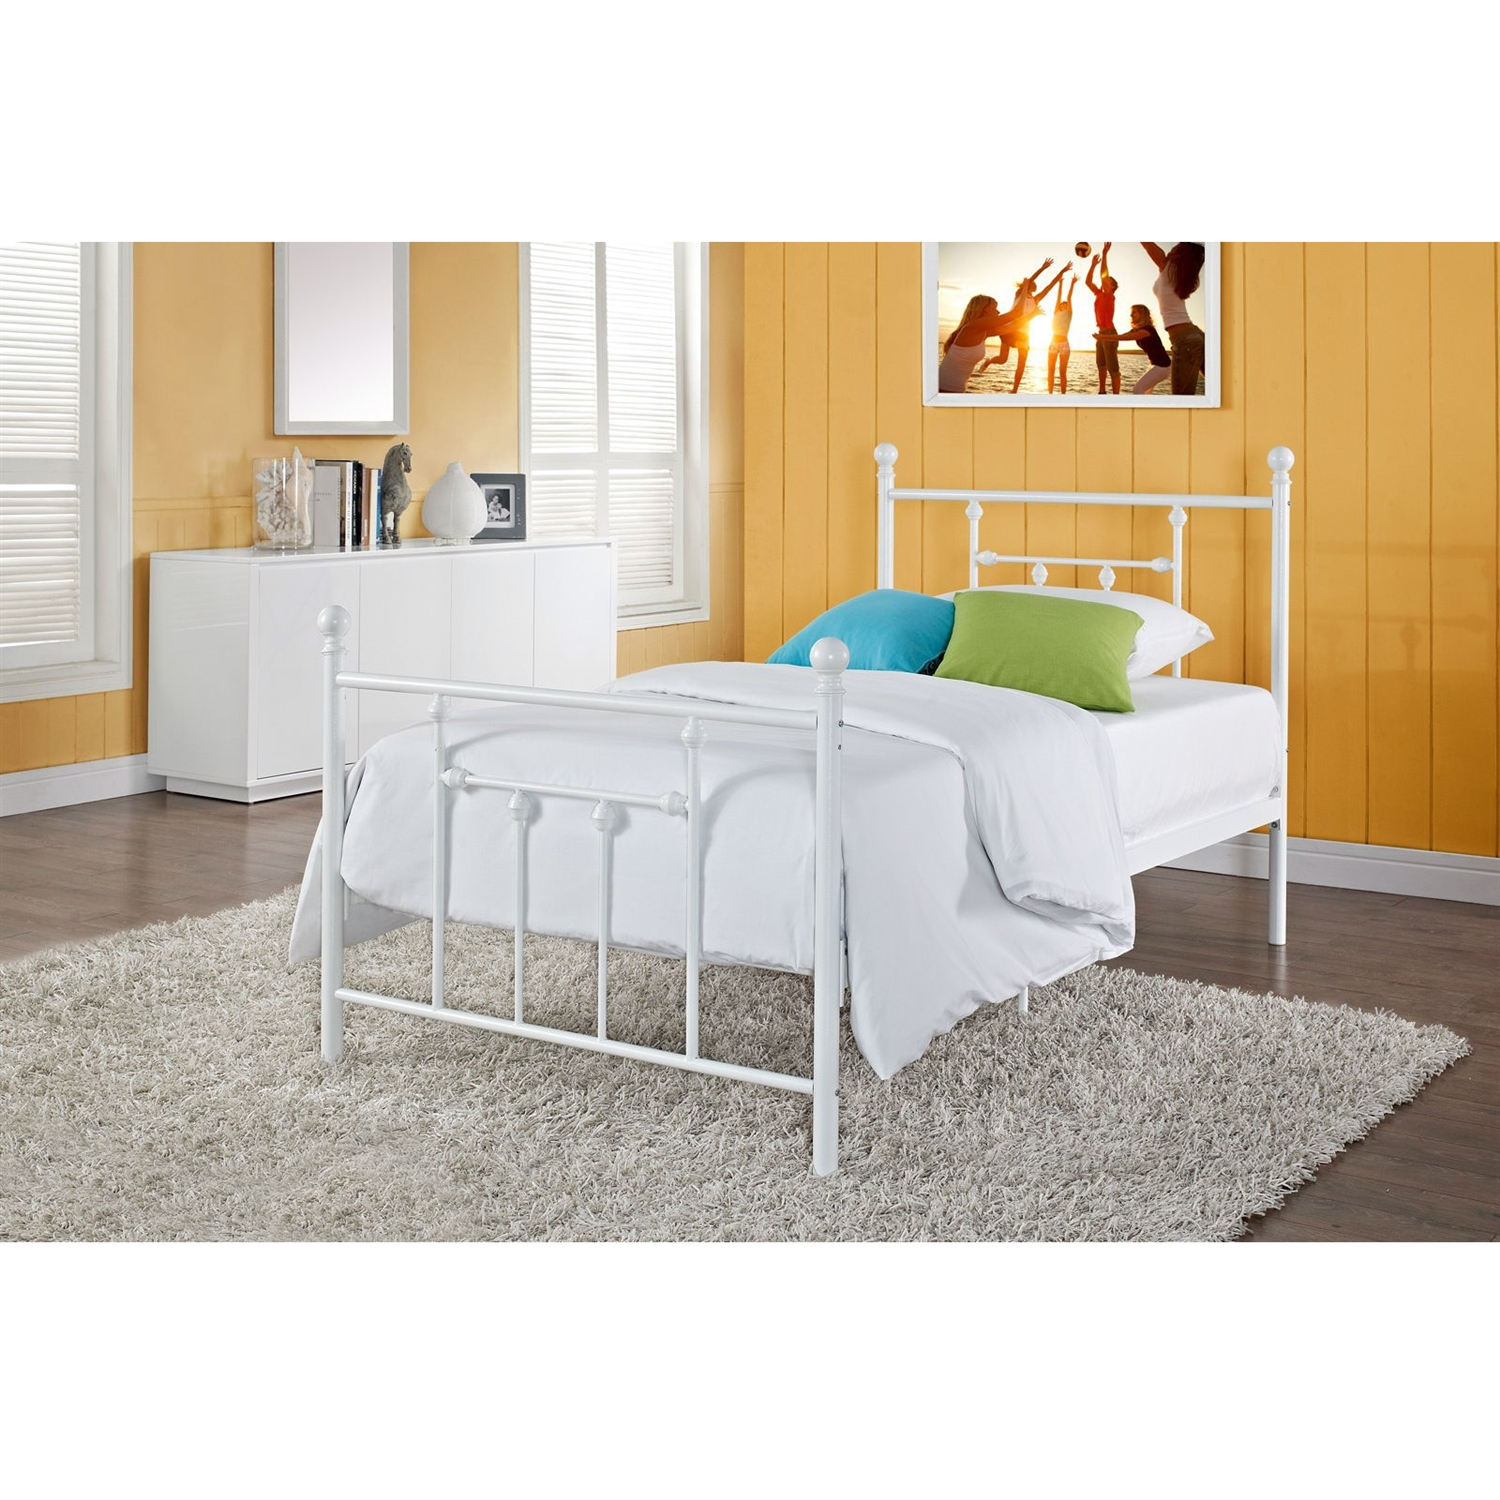 Full size White Metal Platform Bed with Headboard and Footboard ...